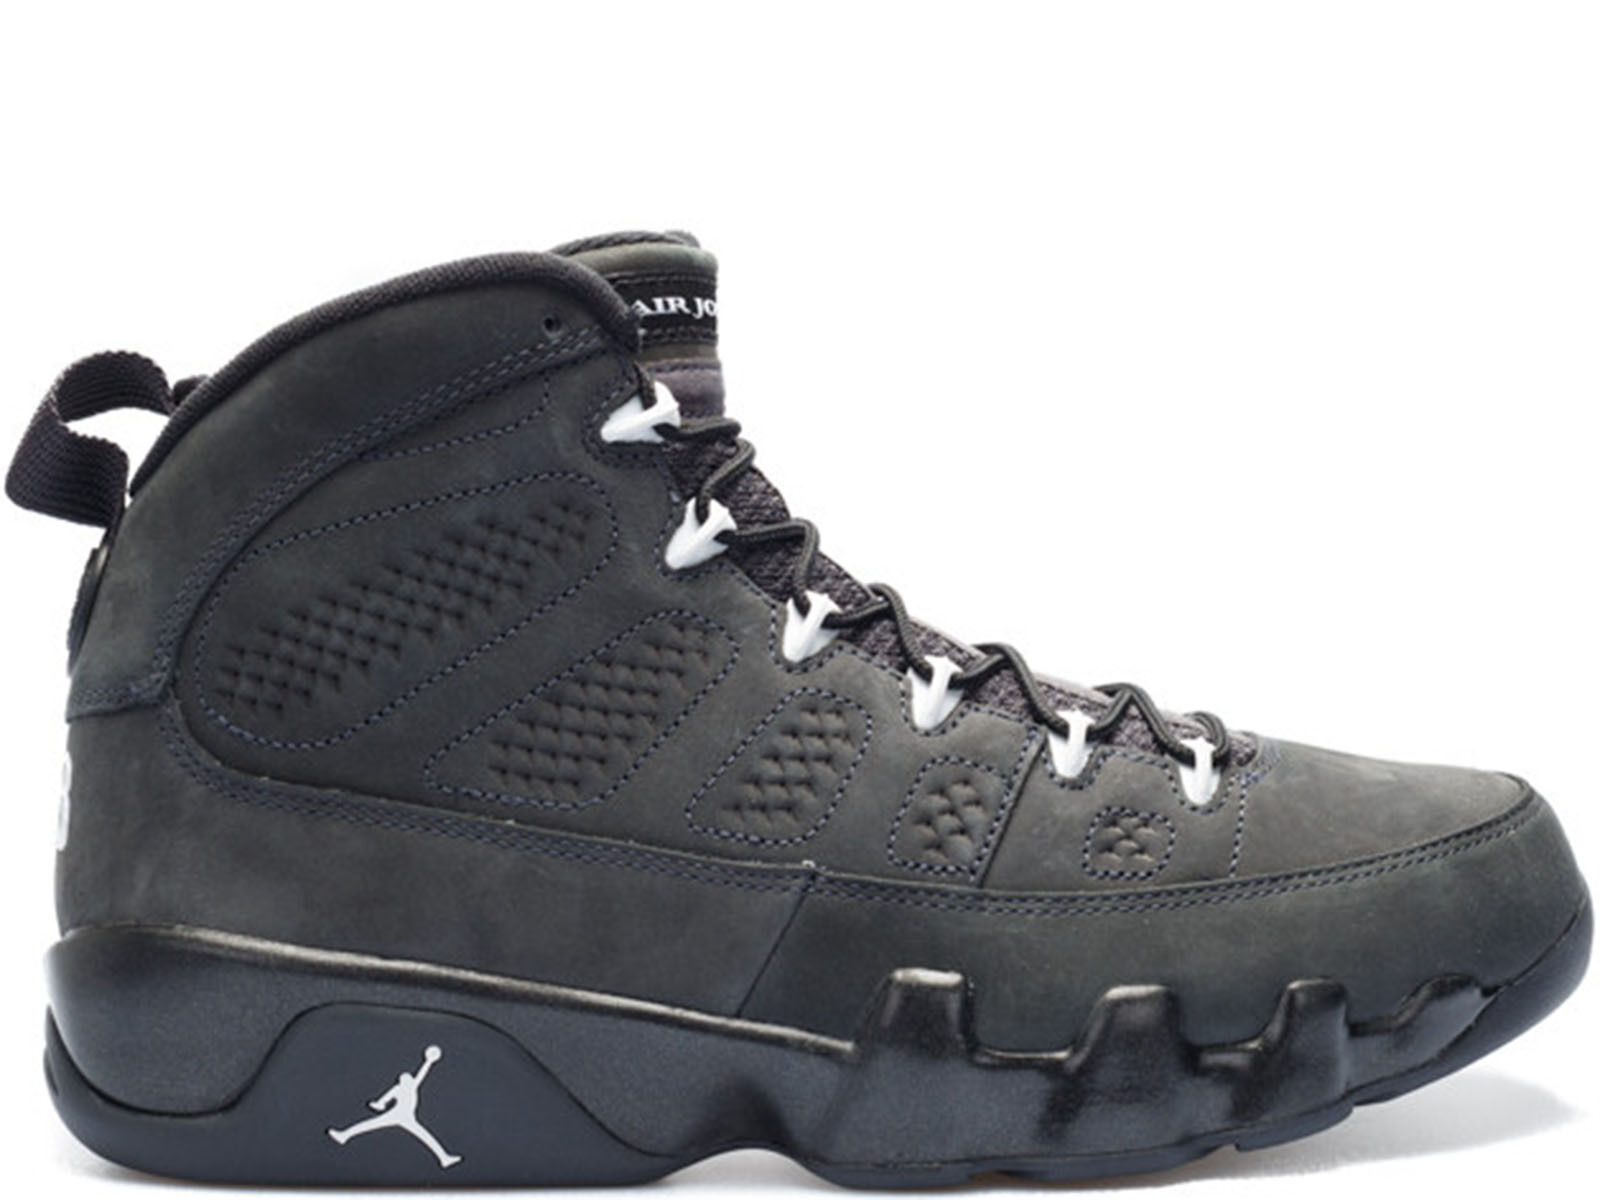 Men's Brand New Air Jordan 9 Retro  Anthracite  Athletic Sneakers